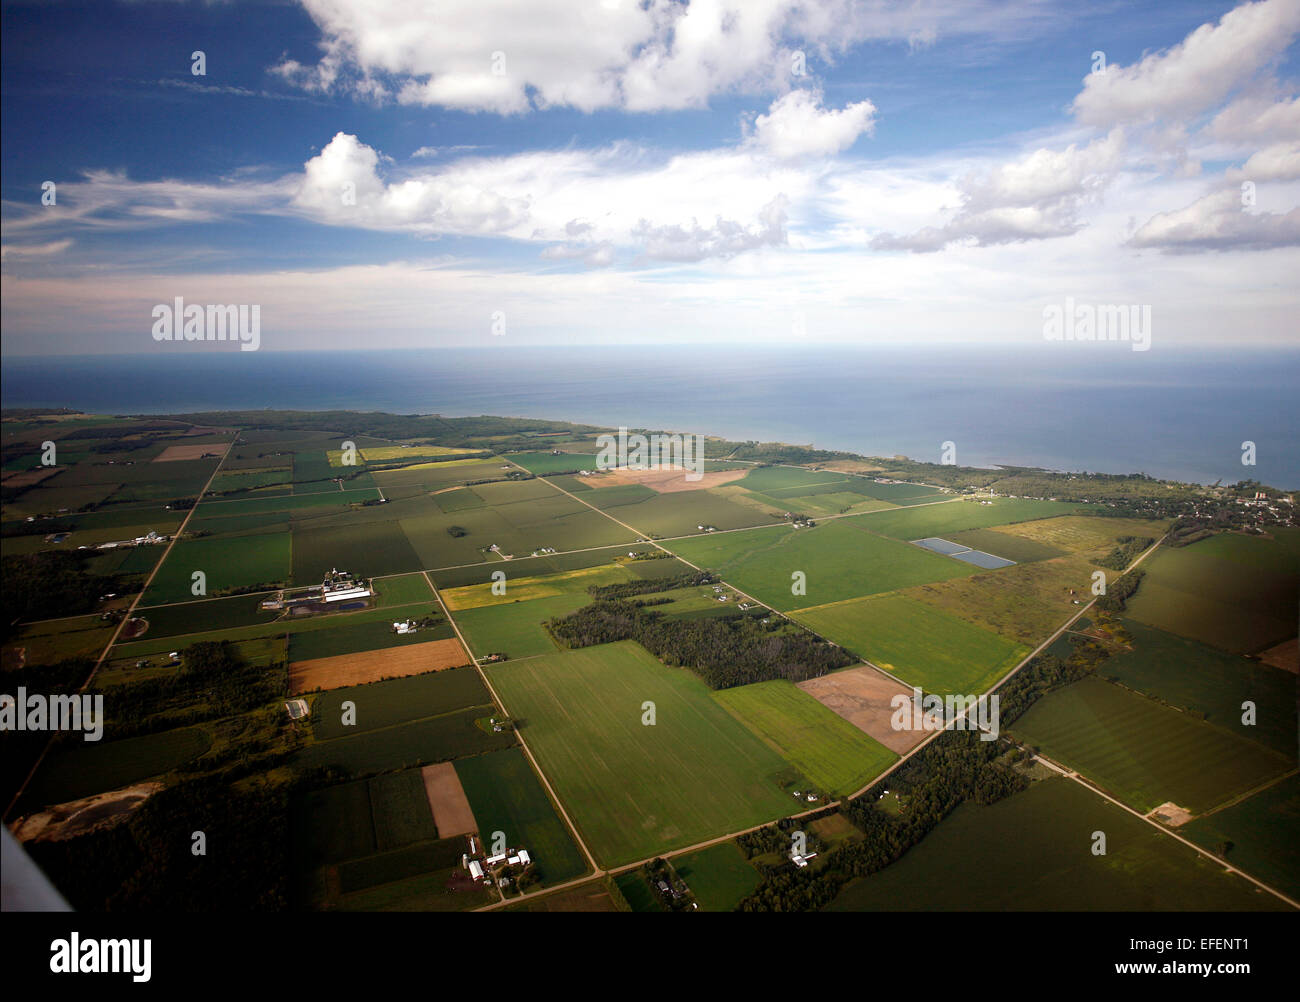 Farmland near Port Hope in Huron County, Michigan in the Saginaw Bay Watershed.  View is looking out towards Lake - Stock Image